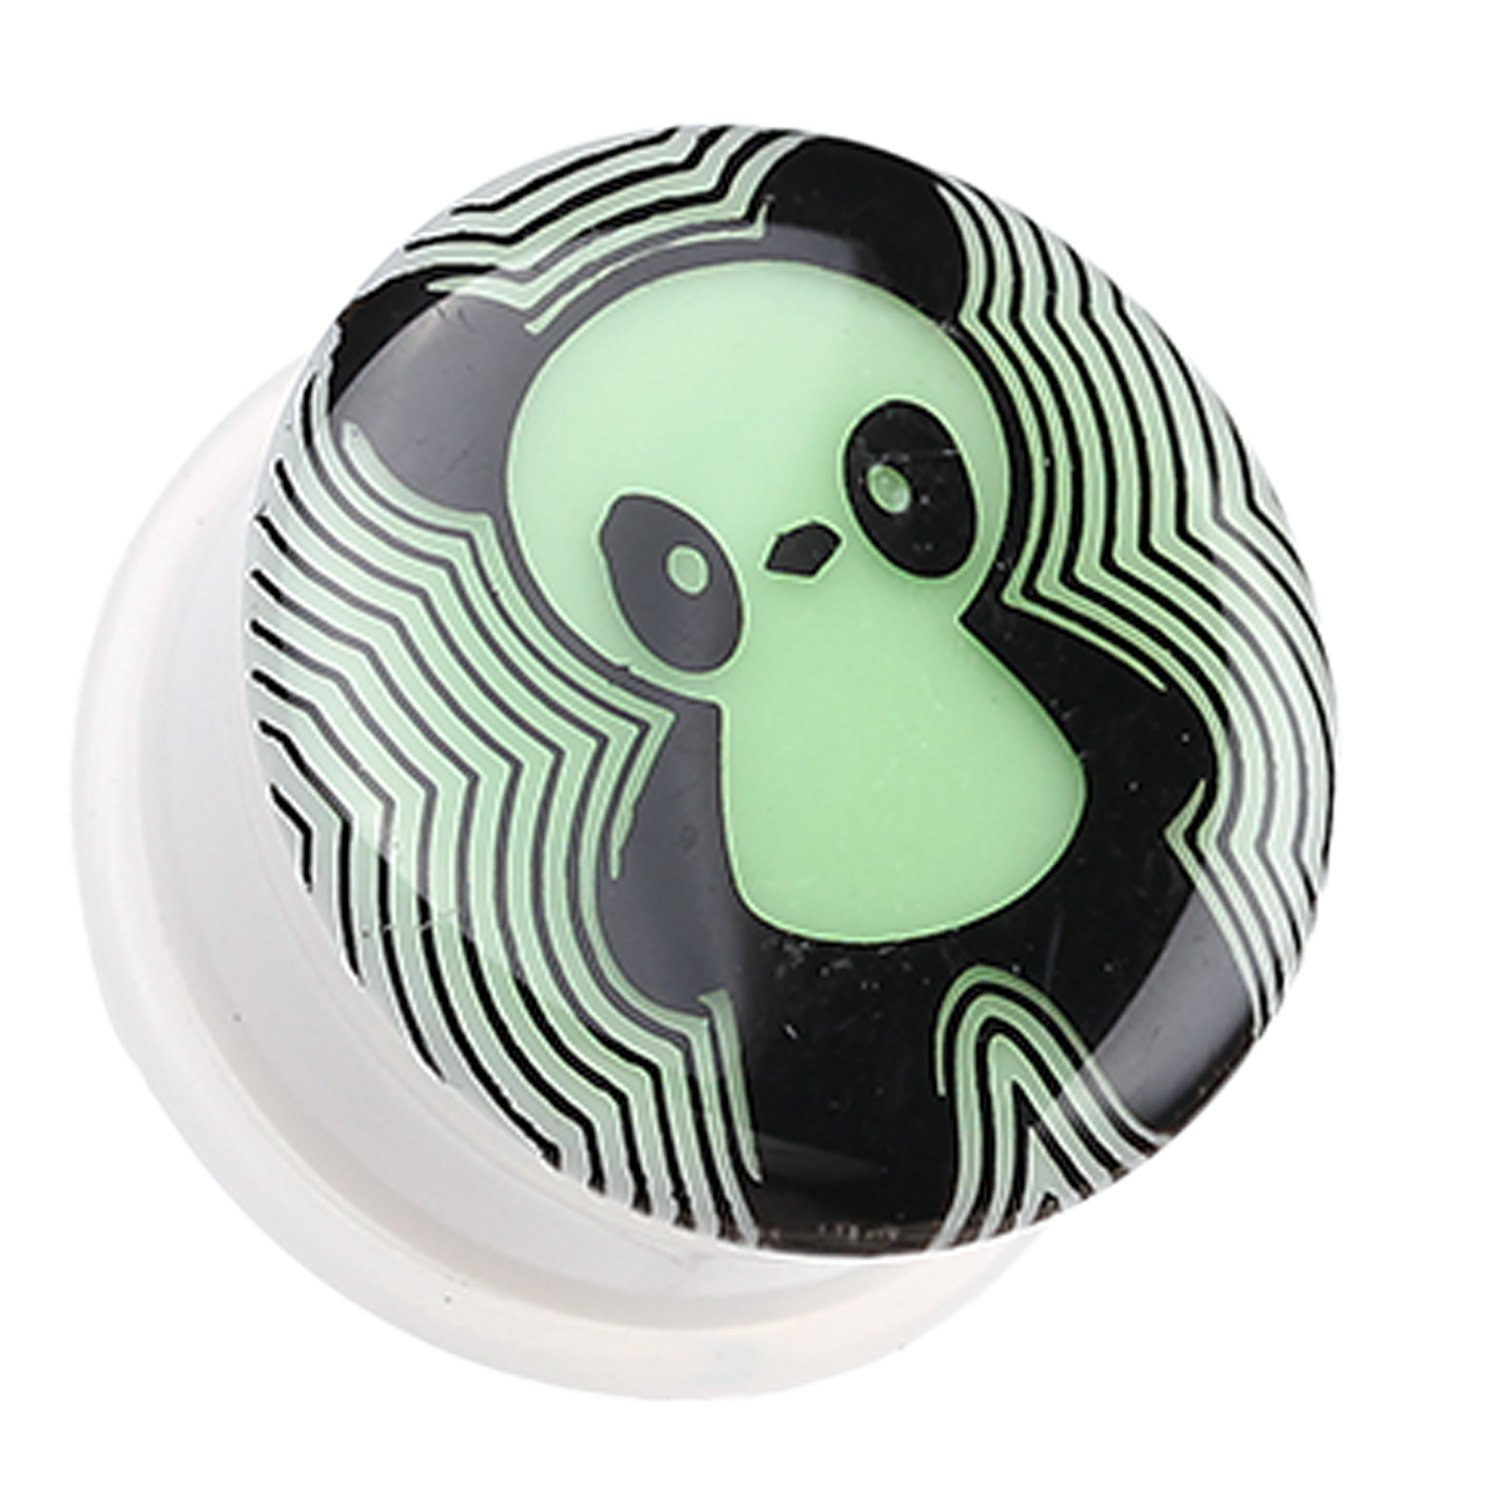 Sold as a Pair Glow in the Dark Panda Single Flared Ear Gauge Plug